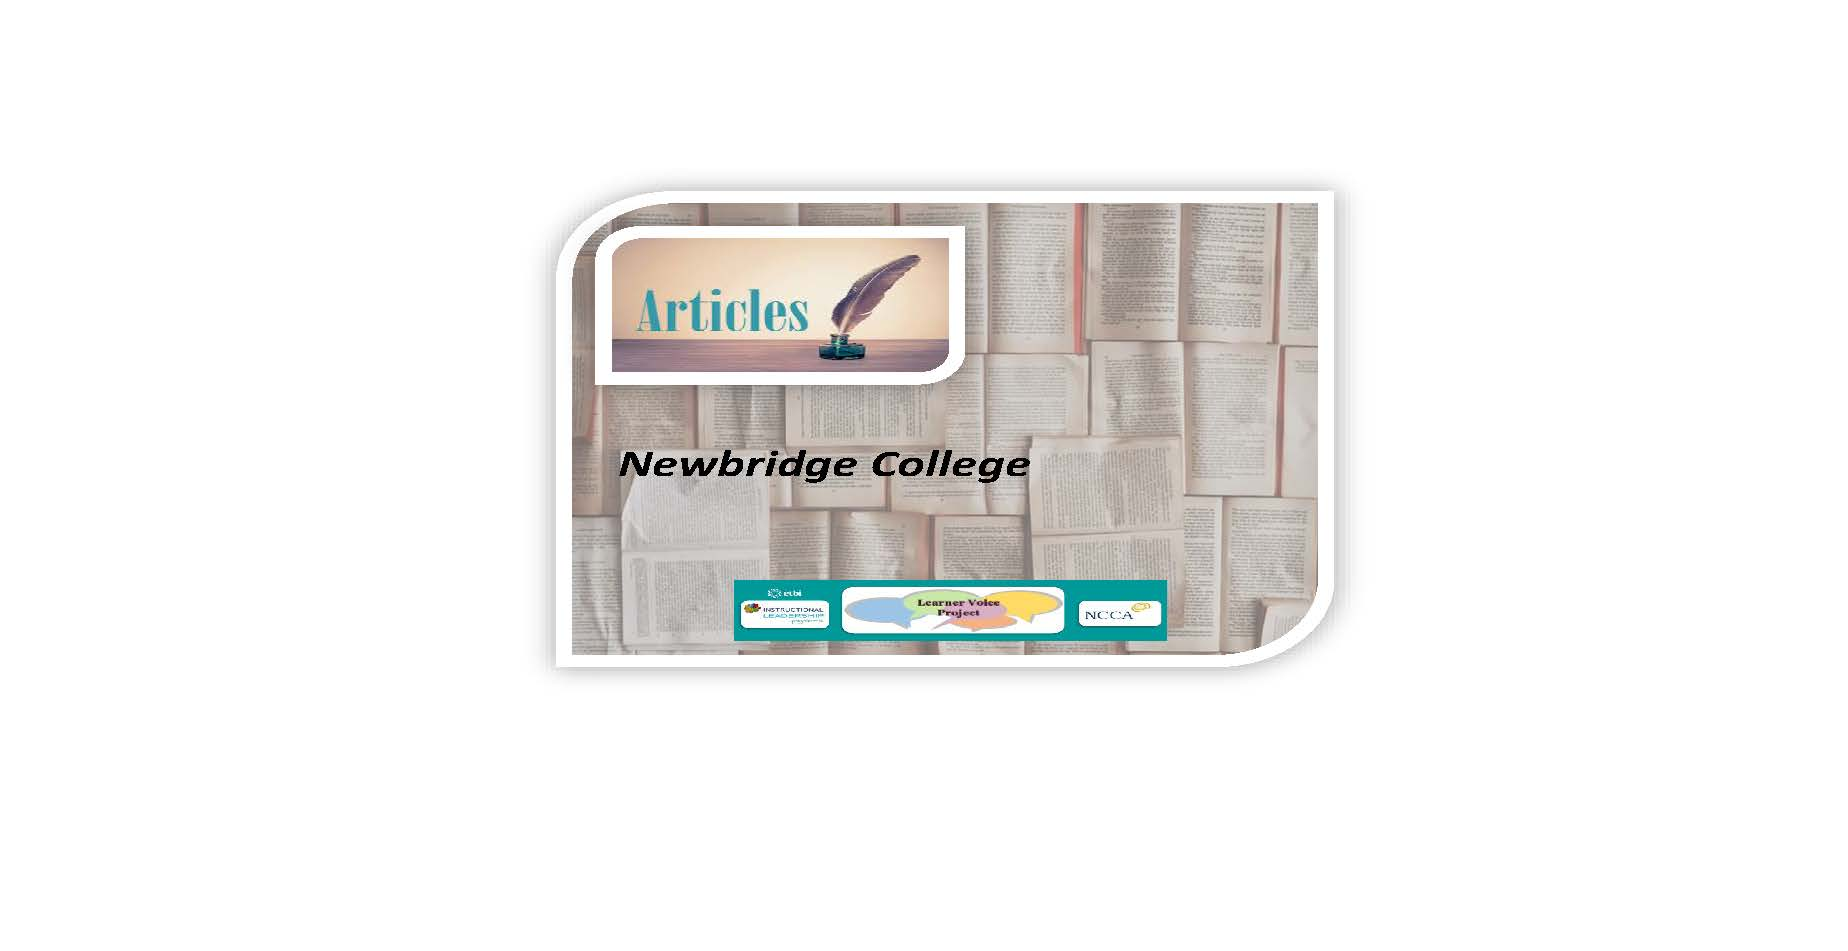 Learner Voice Articles – Newbridge College